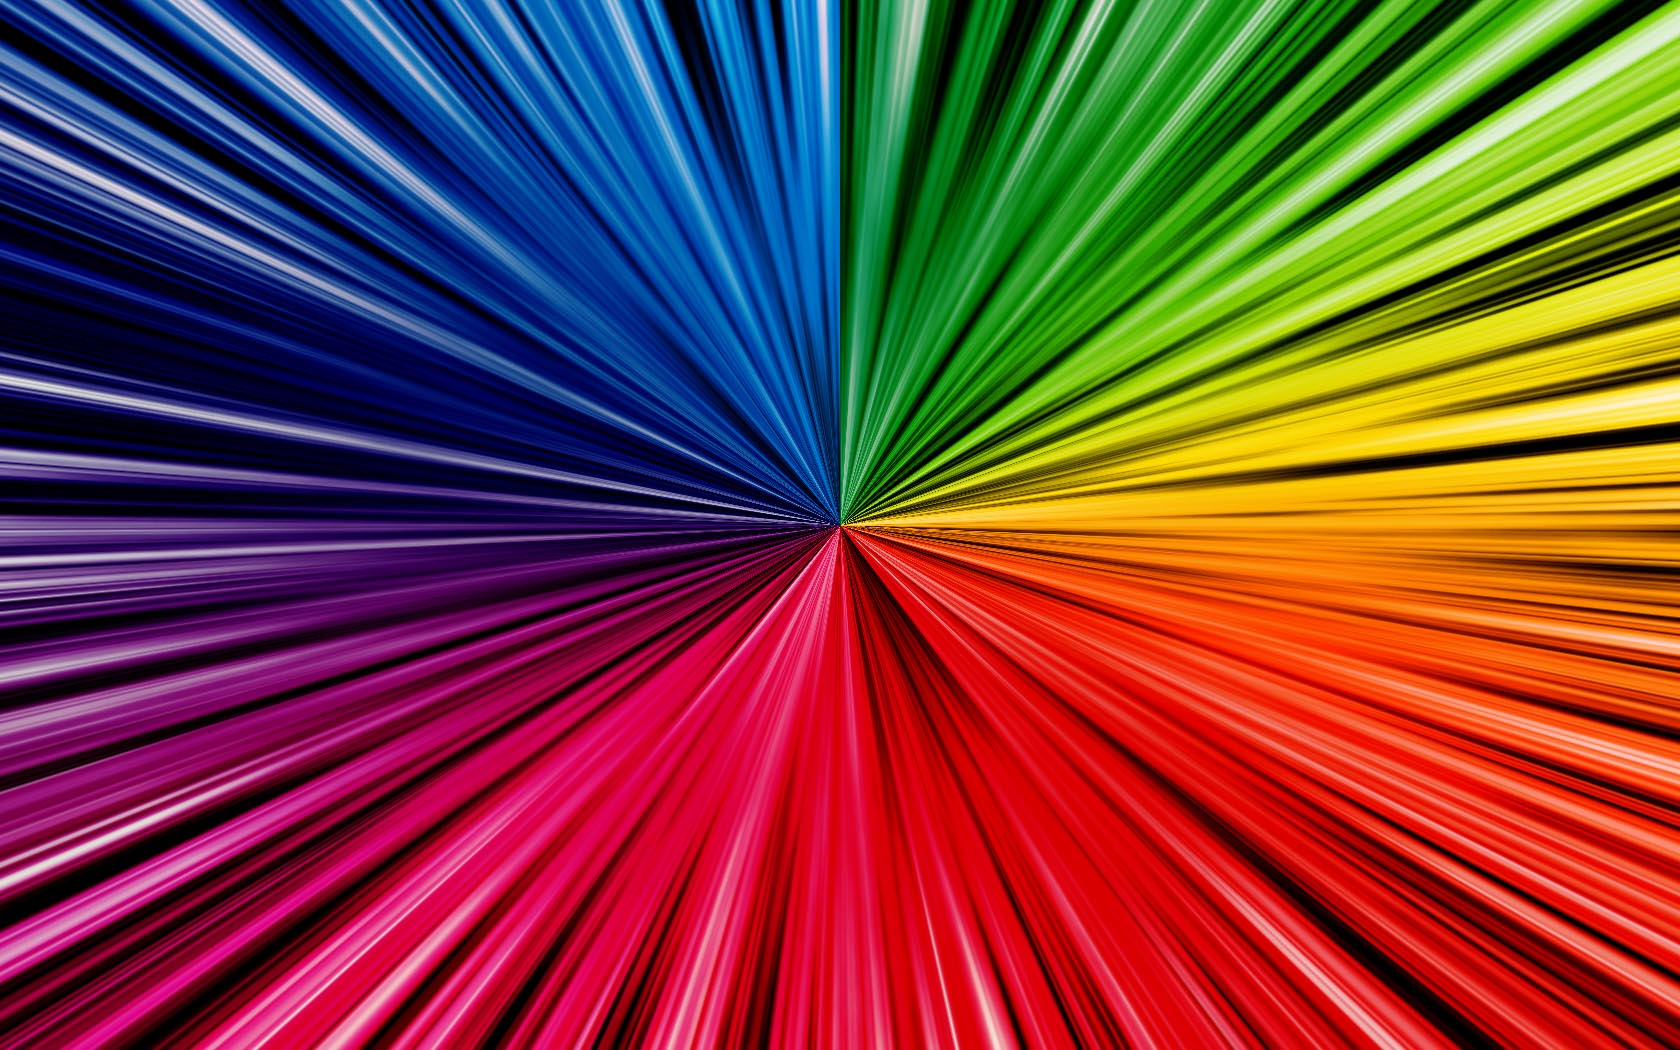 Zoom Colour Wallpaper Best Collection #7136 Wallpaper